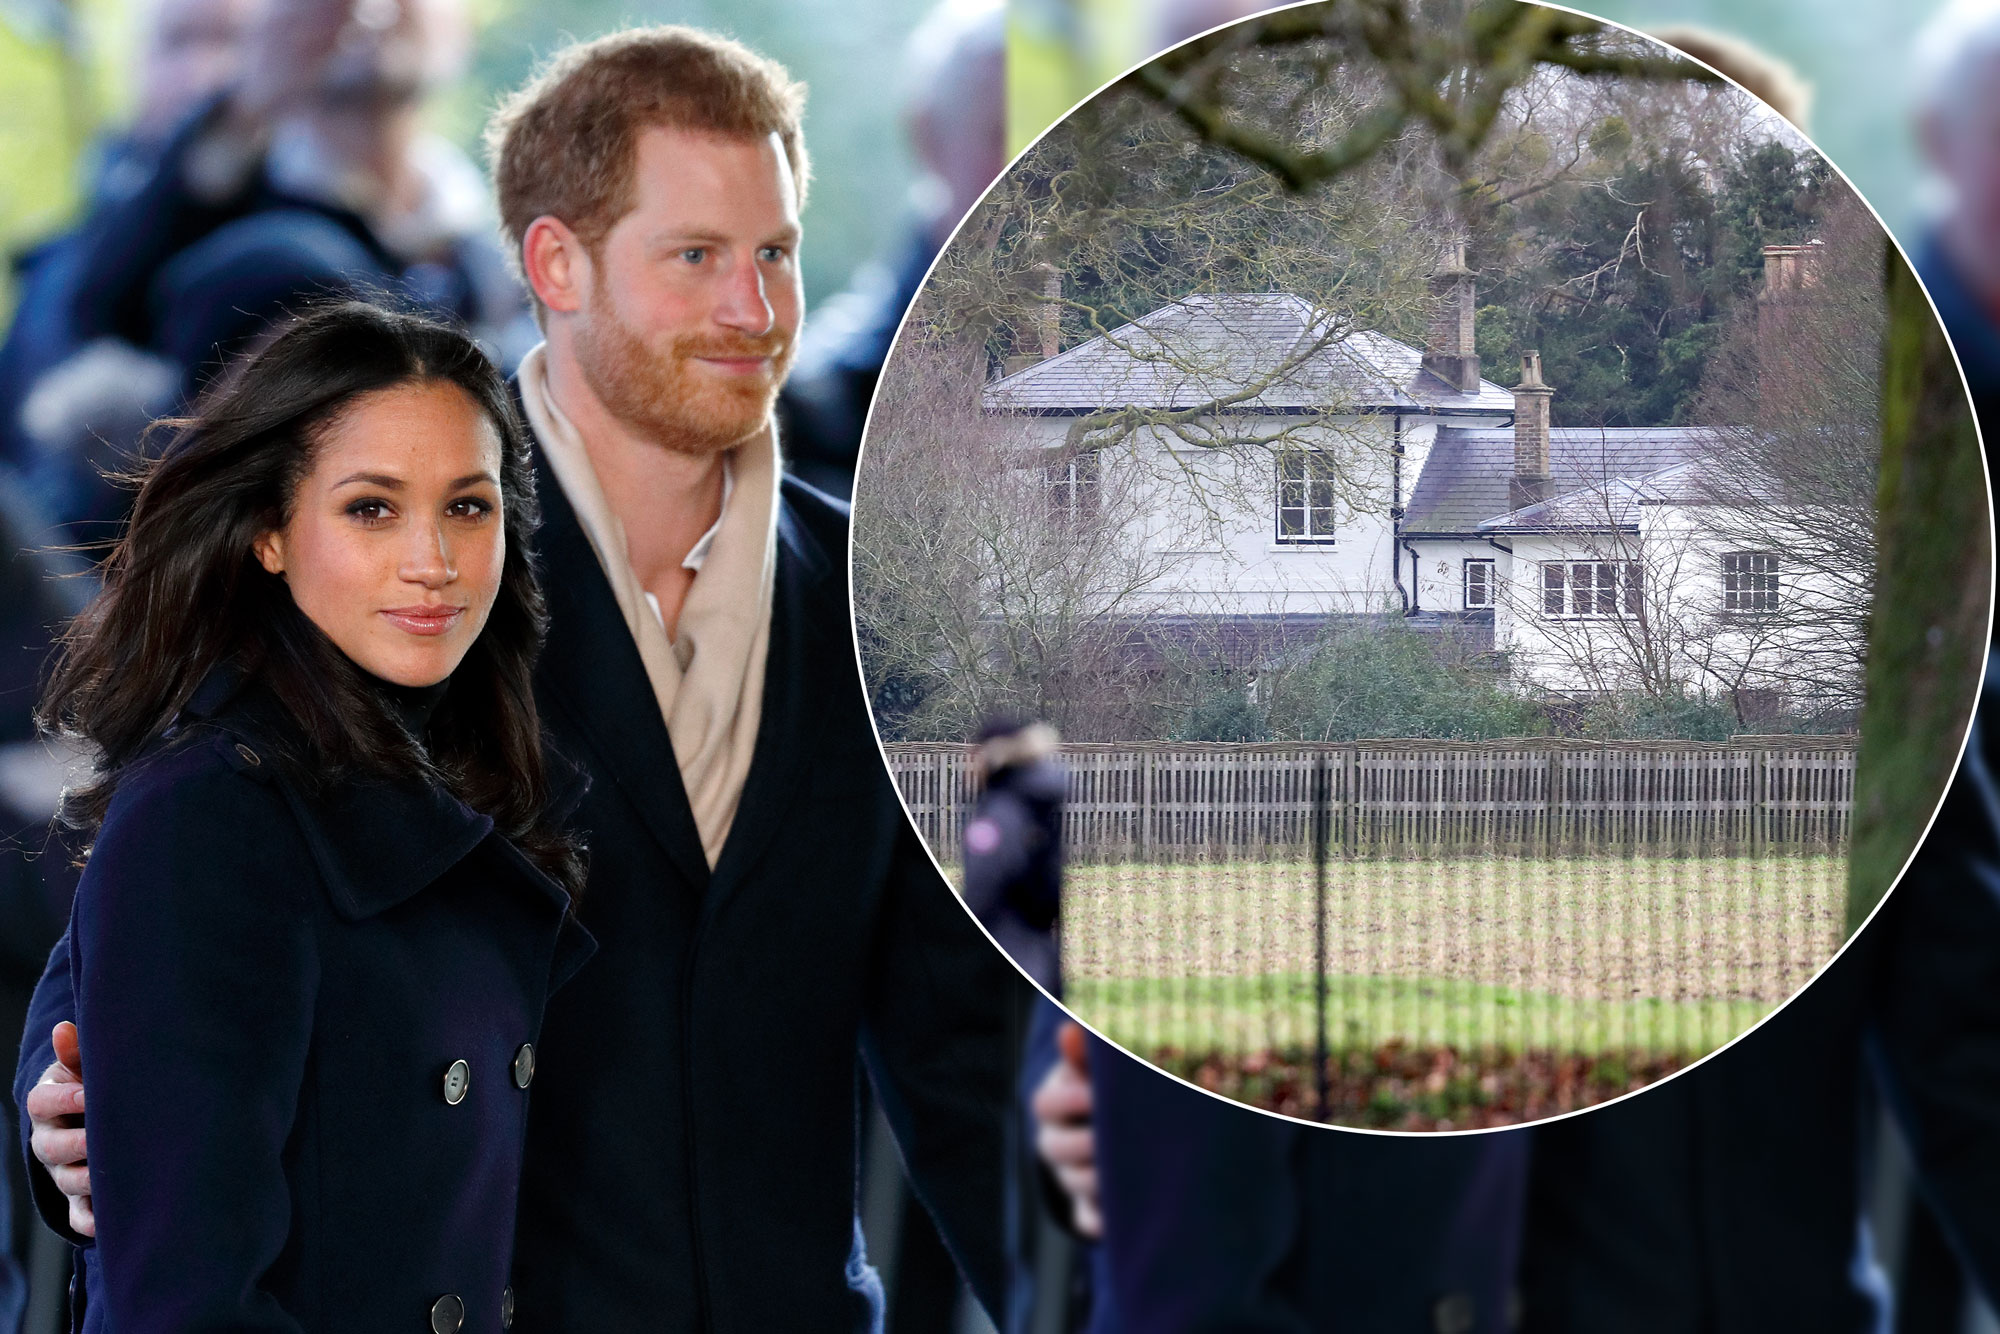 Harry, Meghan paid $3.3M for Frogmore Cottage rent, renovations